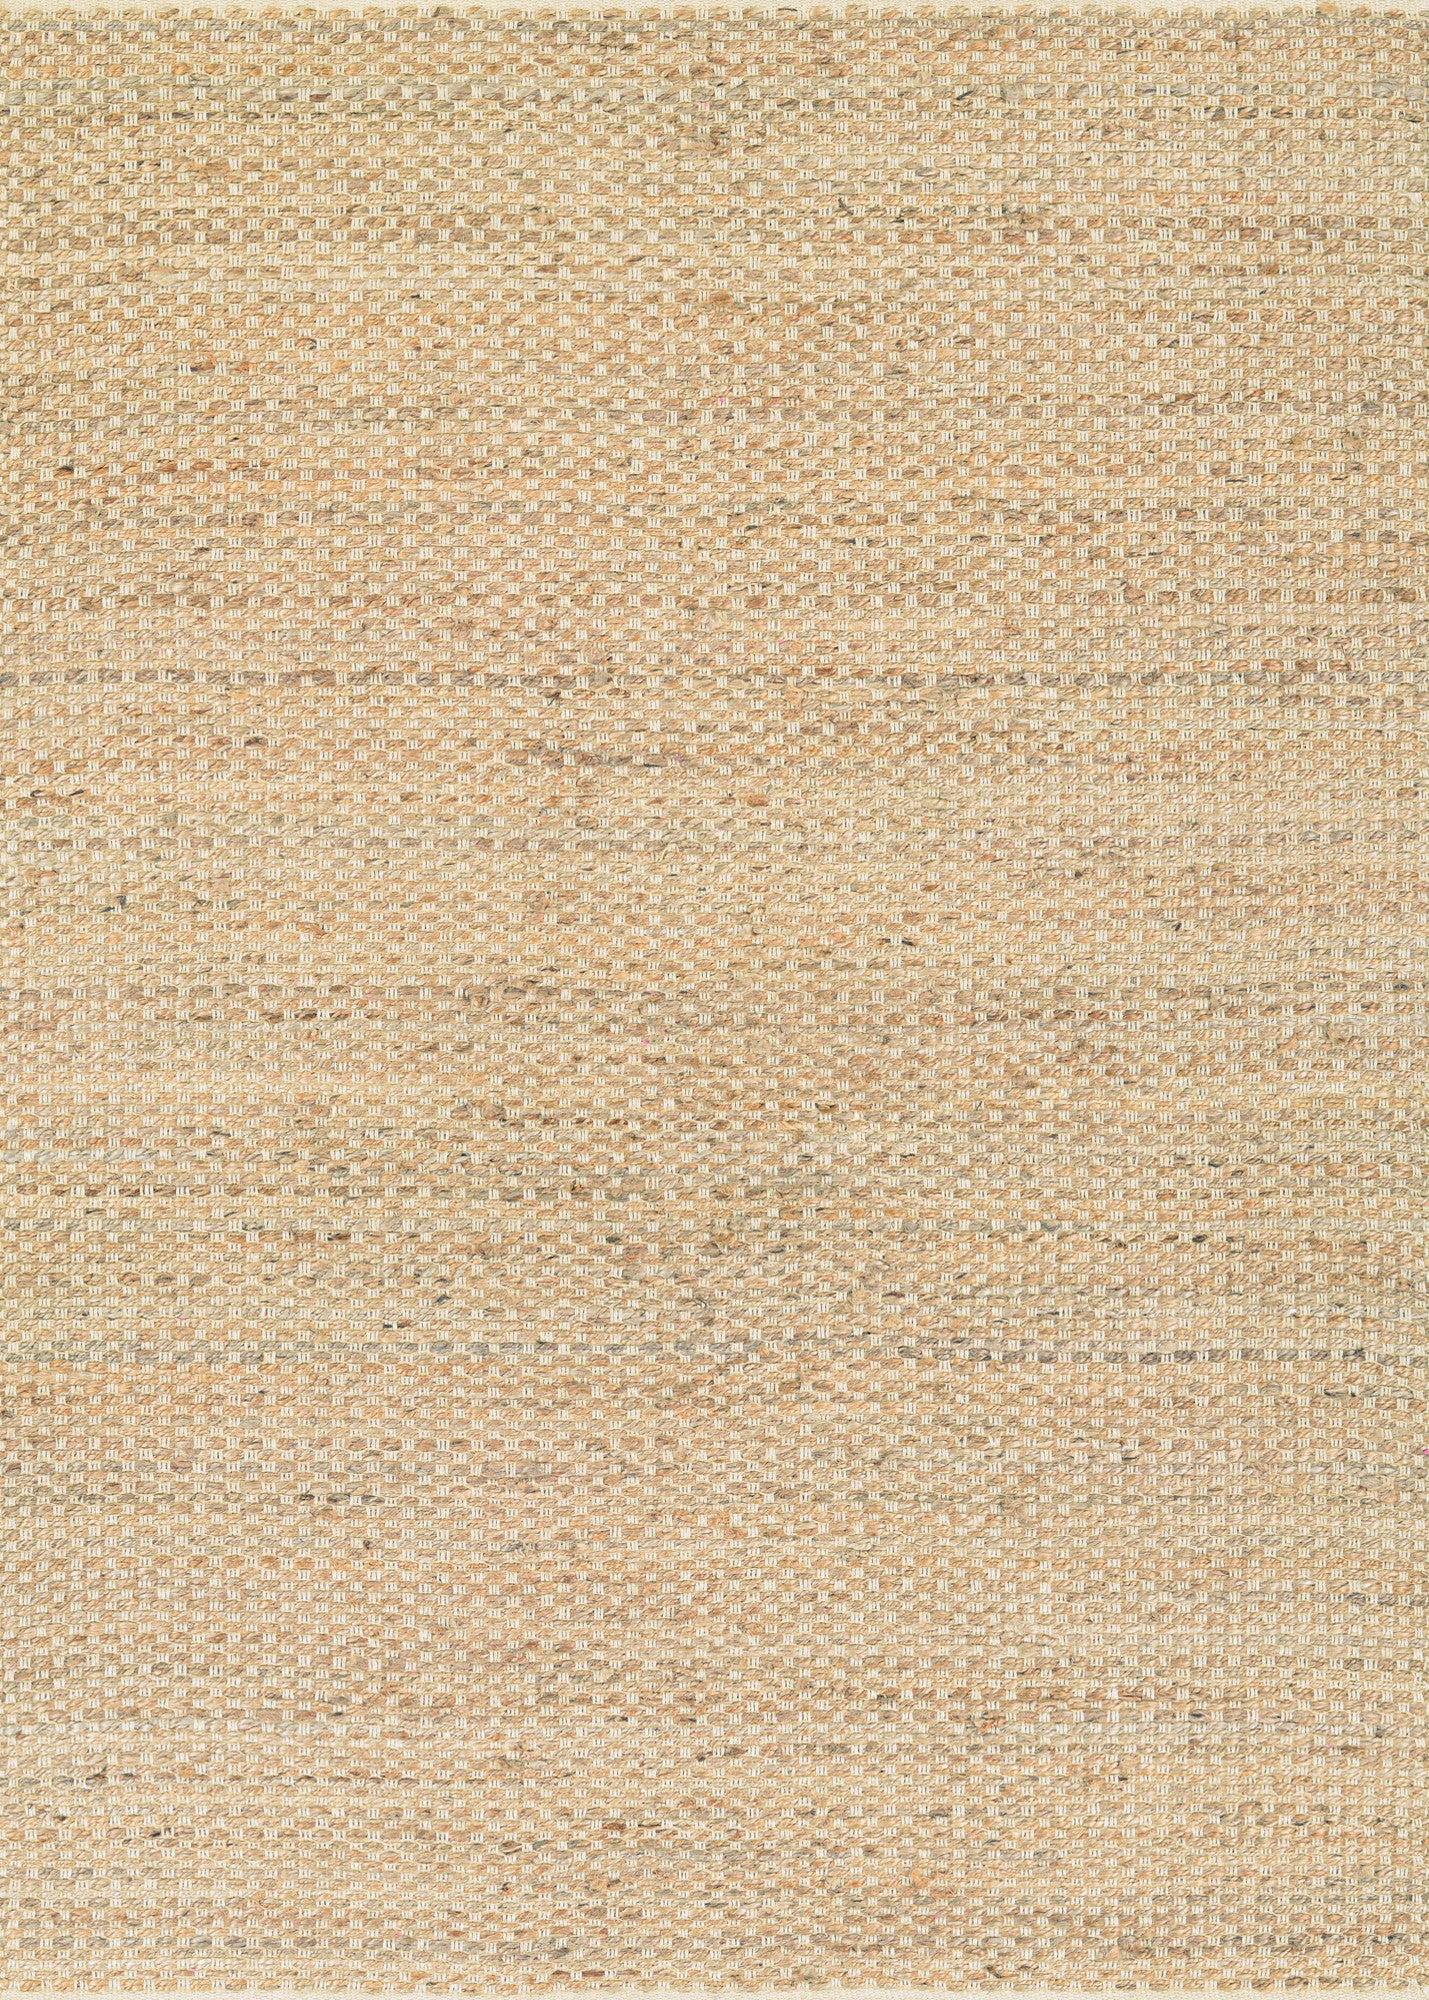 Couristan Nature's Elements Desert Natural/Camel Area Rug